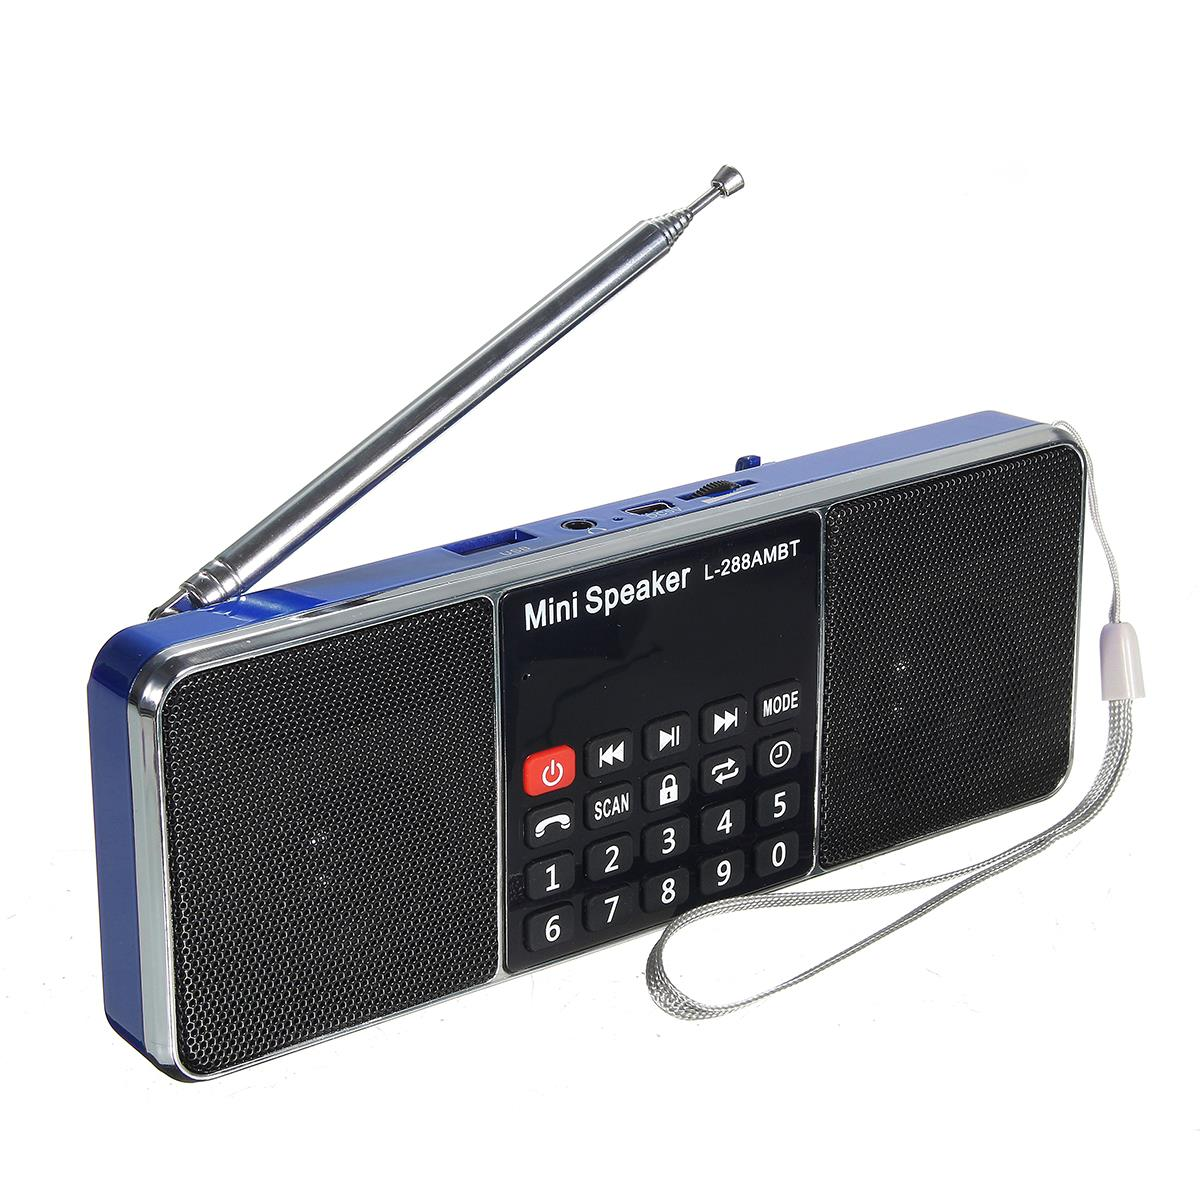 New Bluetooth Portable LCD FM/AM Radio Stereo Speaker MP3 Music Player Micro for SD USB Dual Loudspeaker 1set micro sd tf radio mini usb speaker radio music player portable fm radio stereo pc mp3 new hot